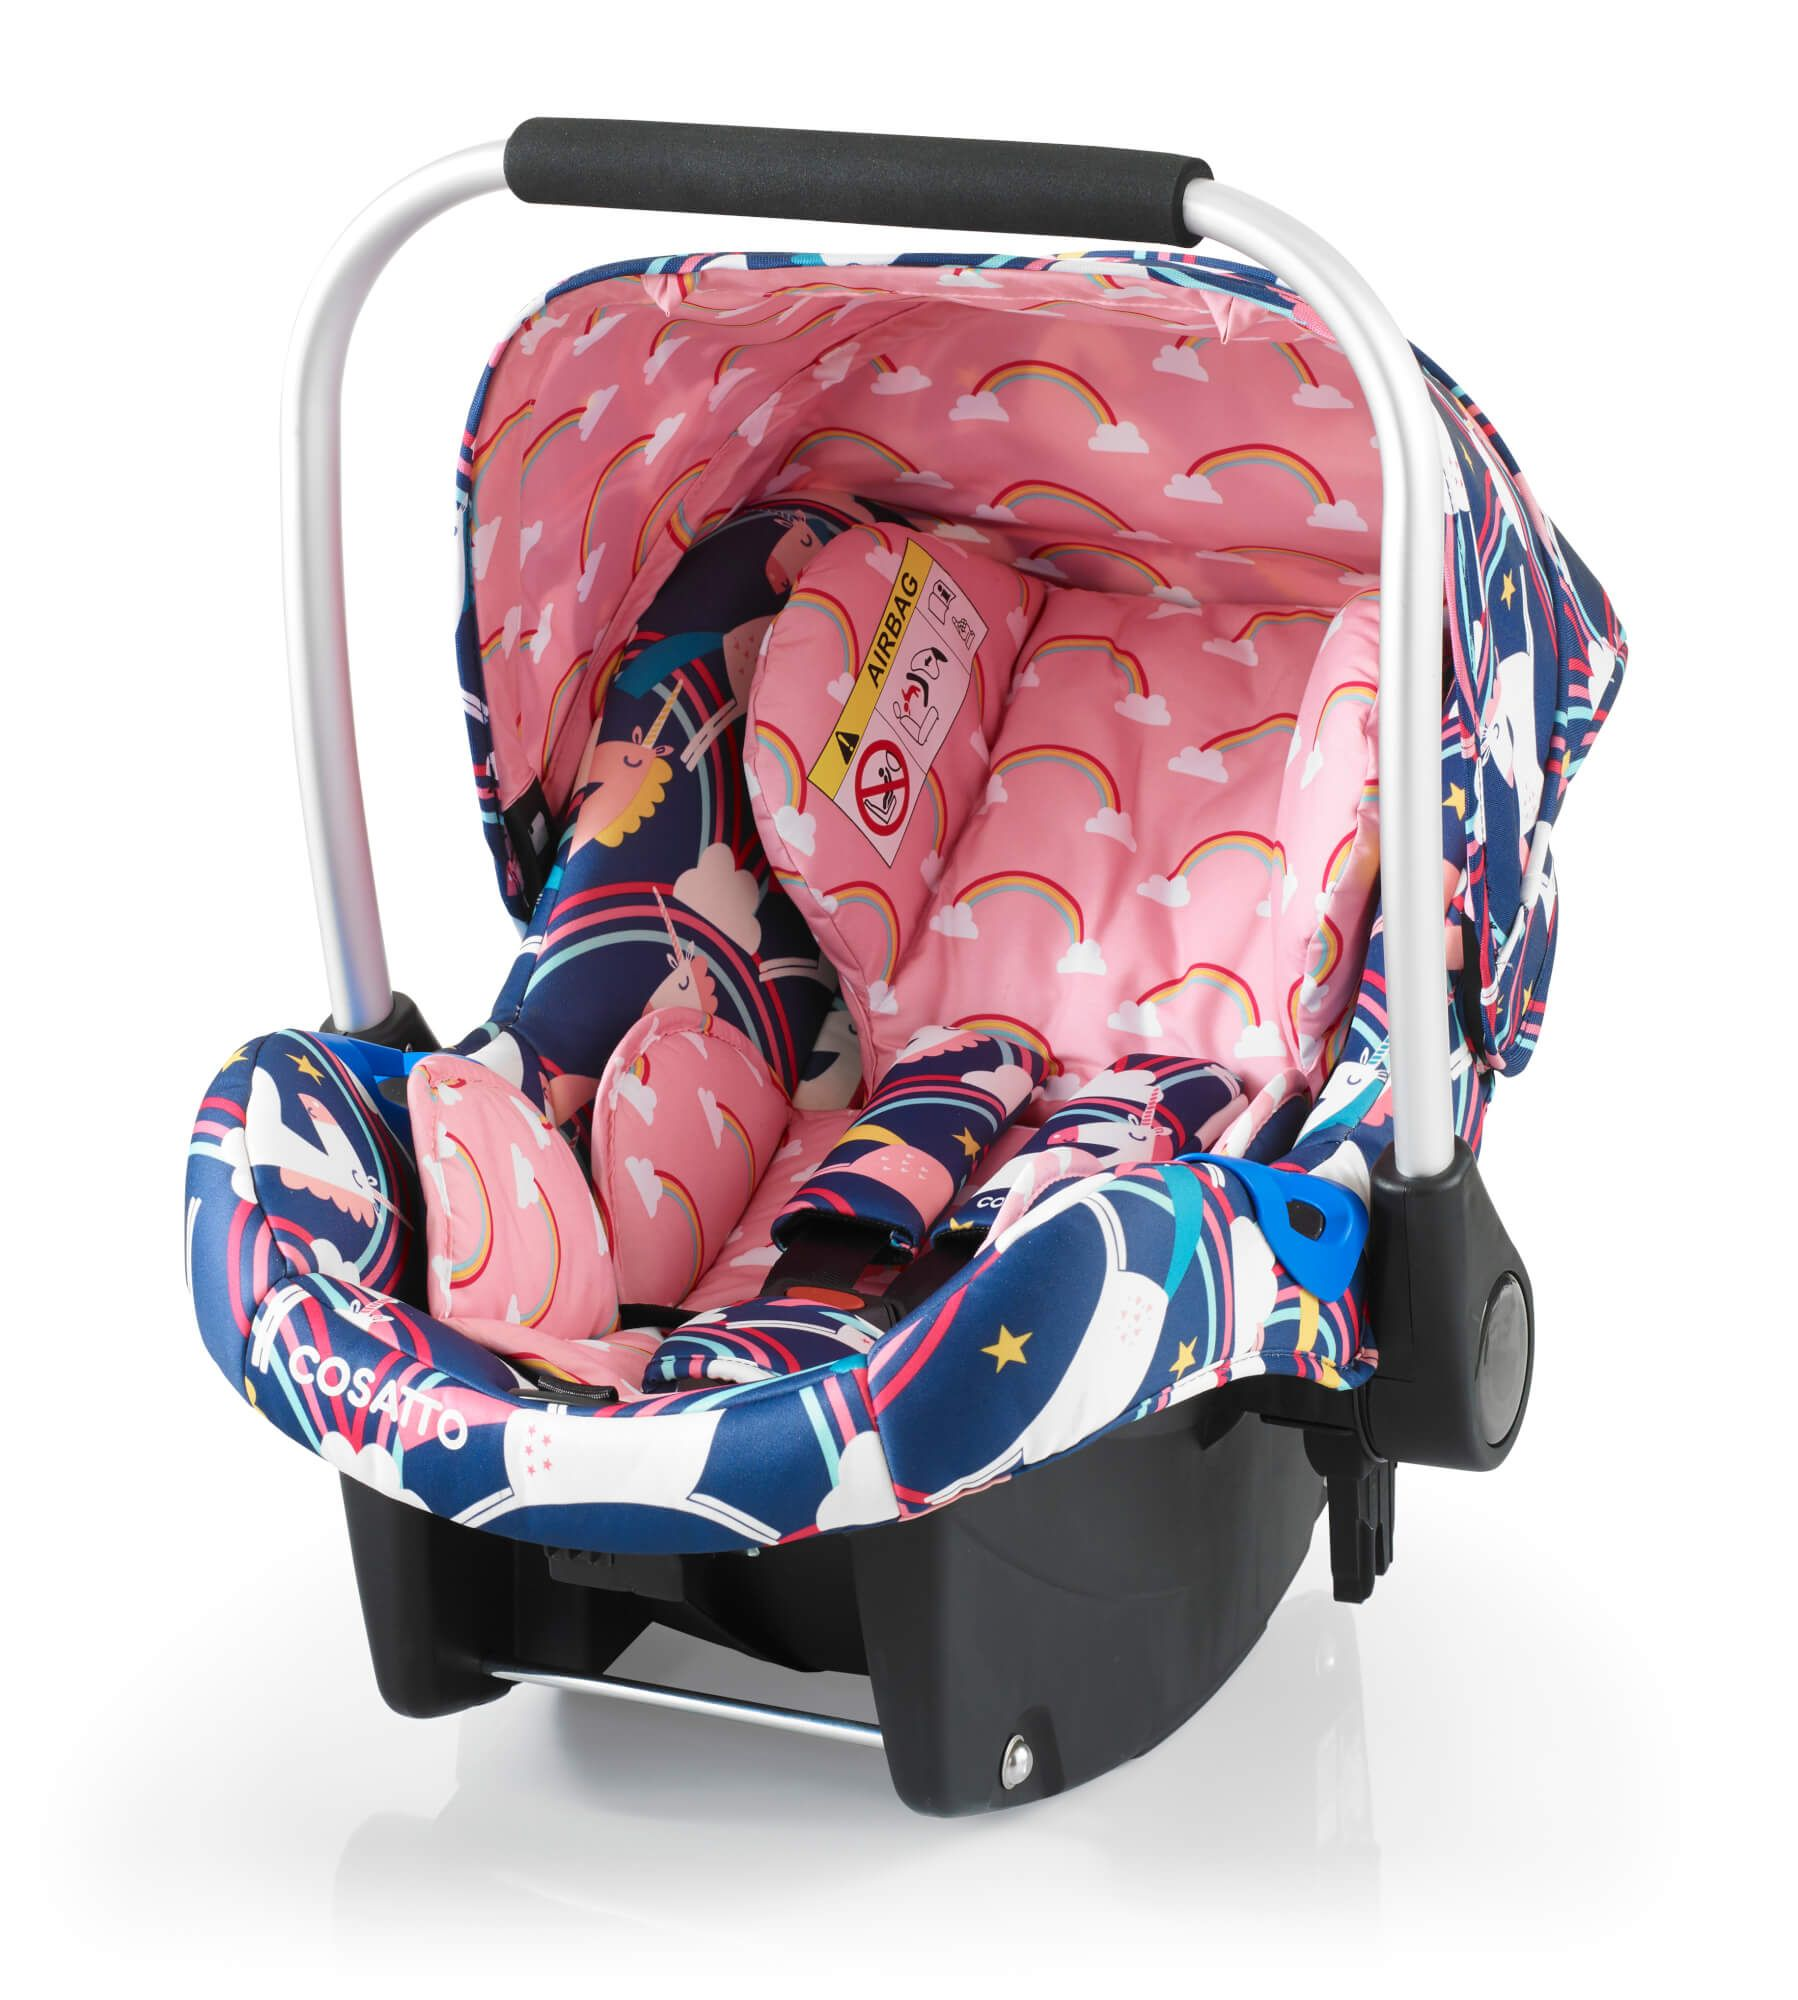 Port Magic Unicorns Baby Car Seats